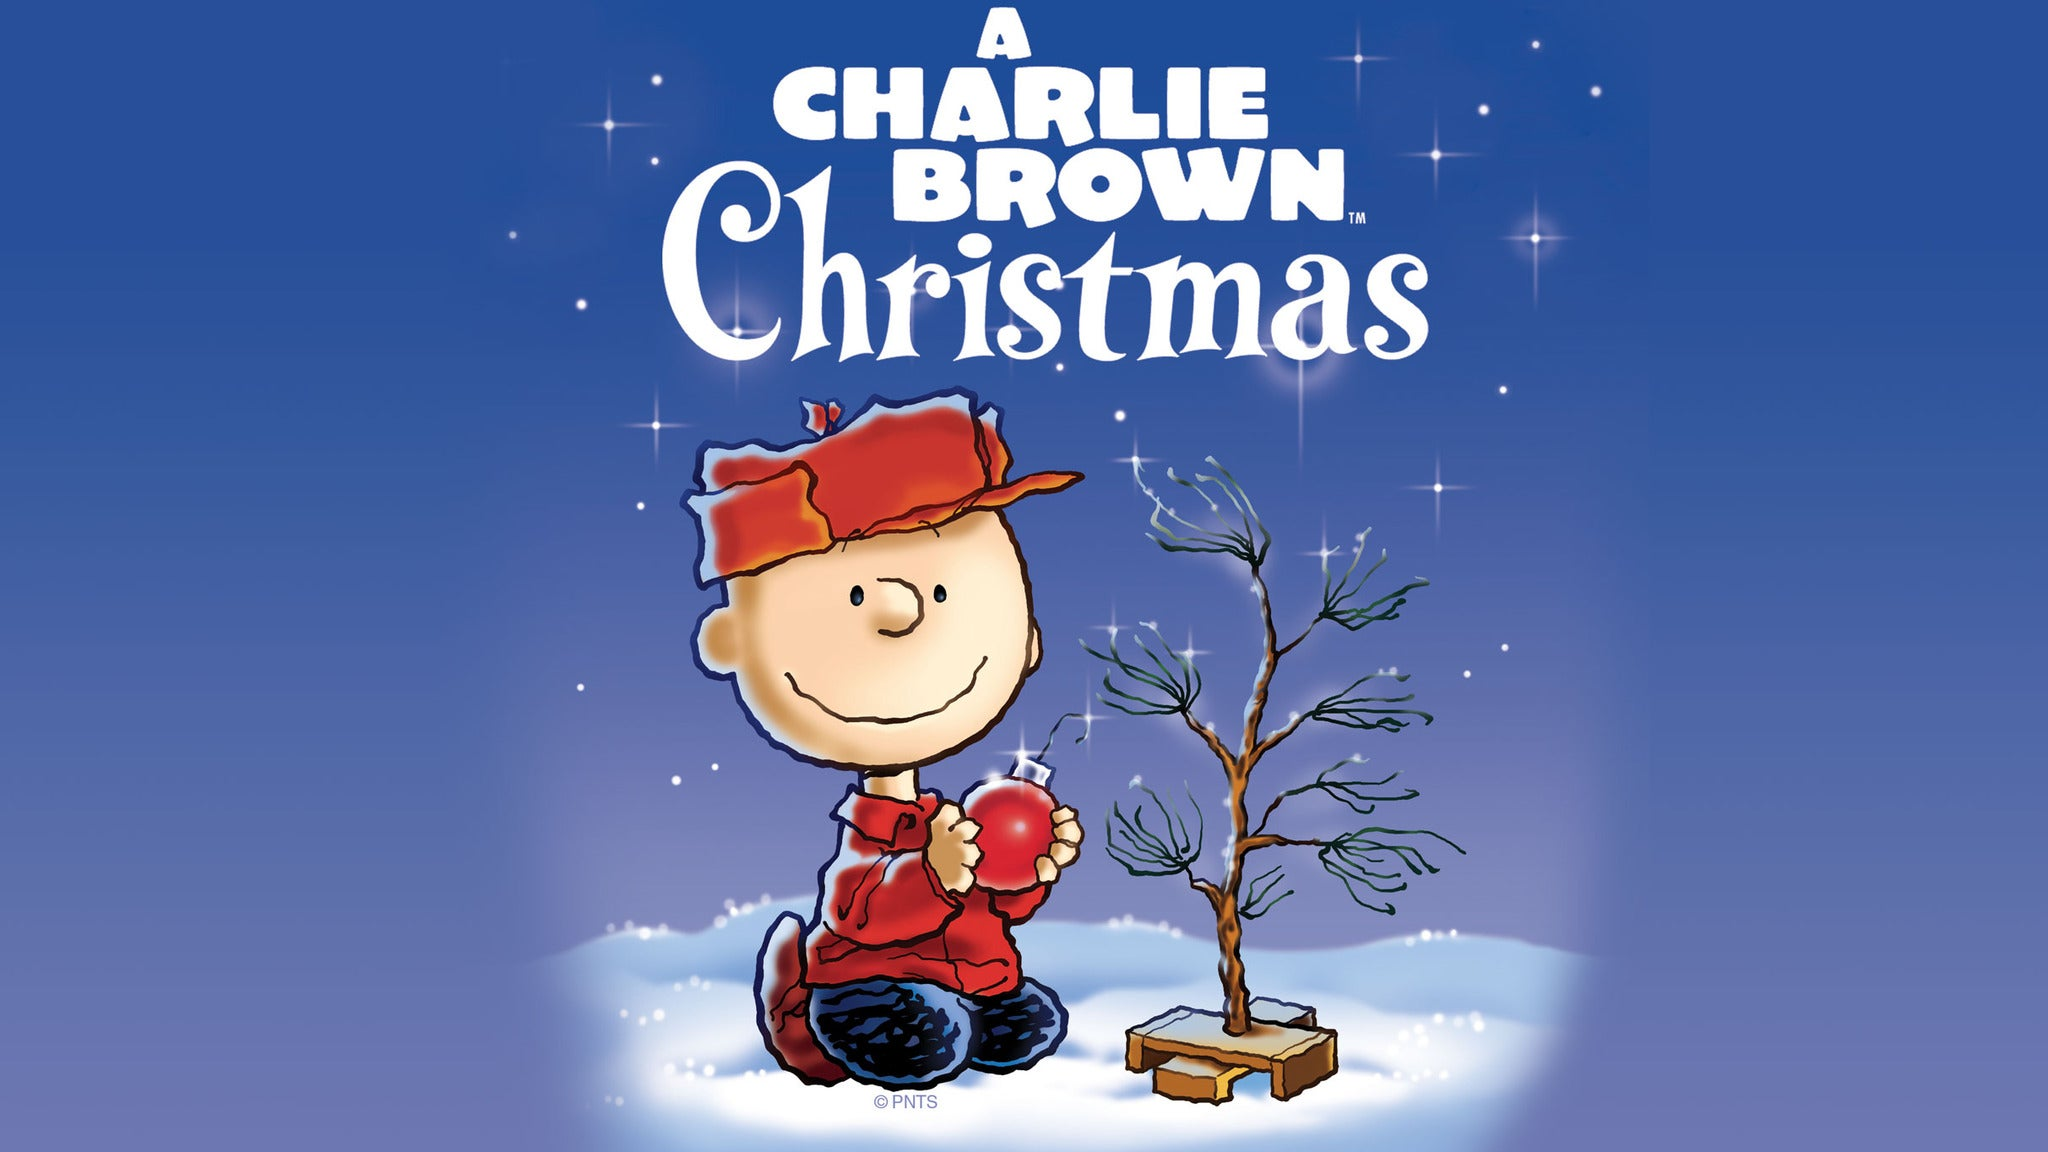 Charlie Brown Christmas at The Hamilton